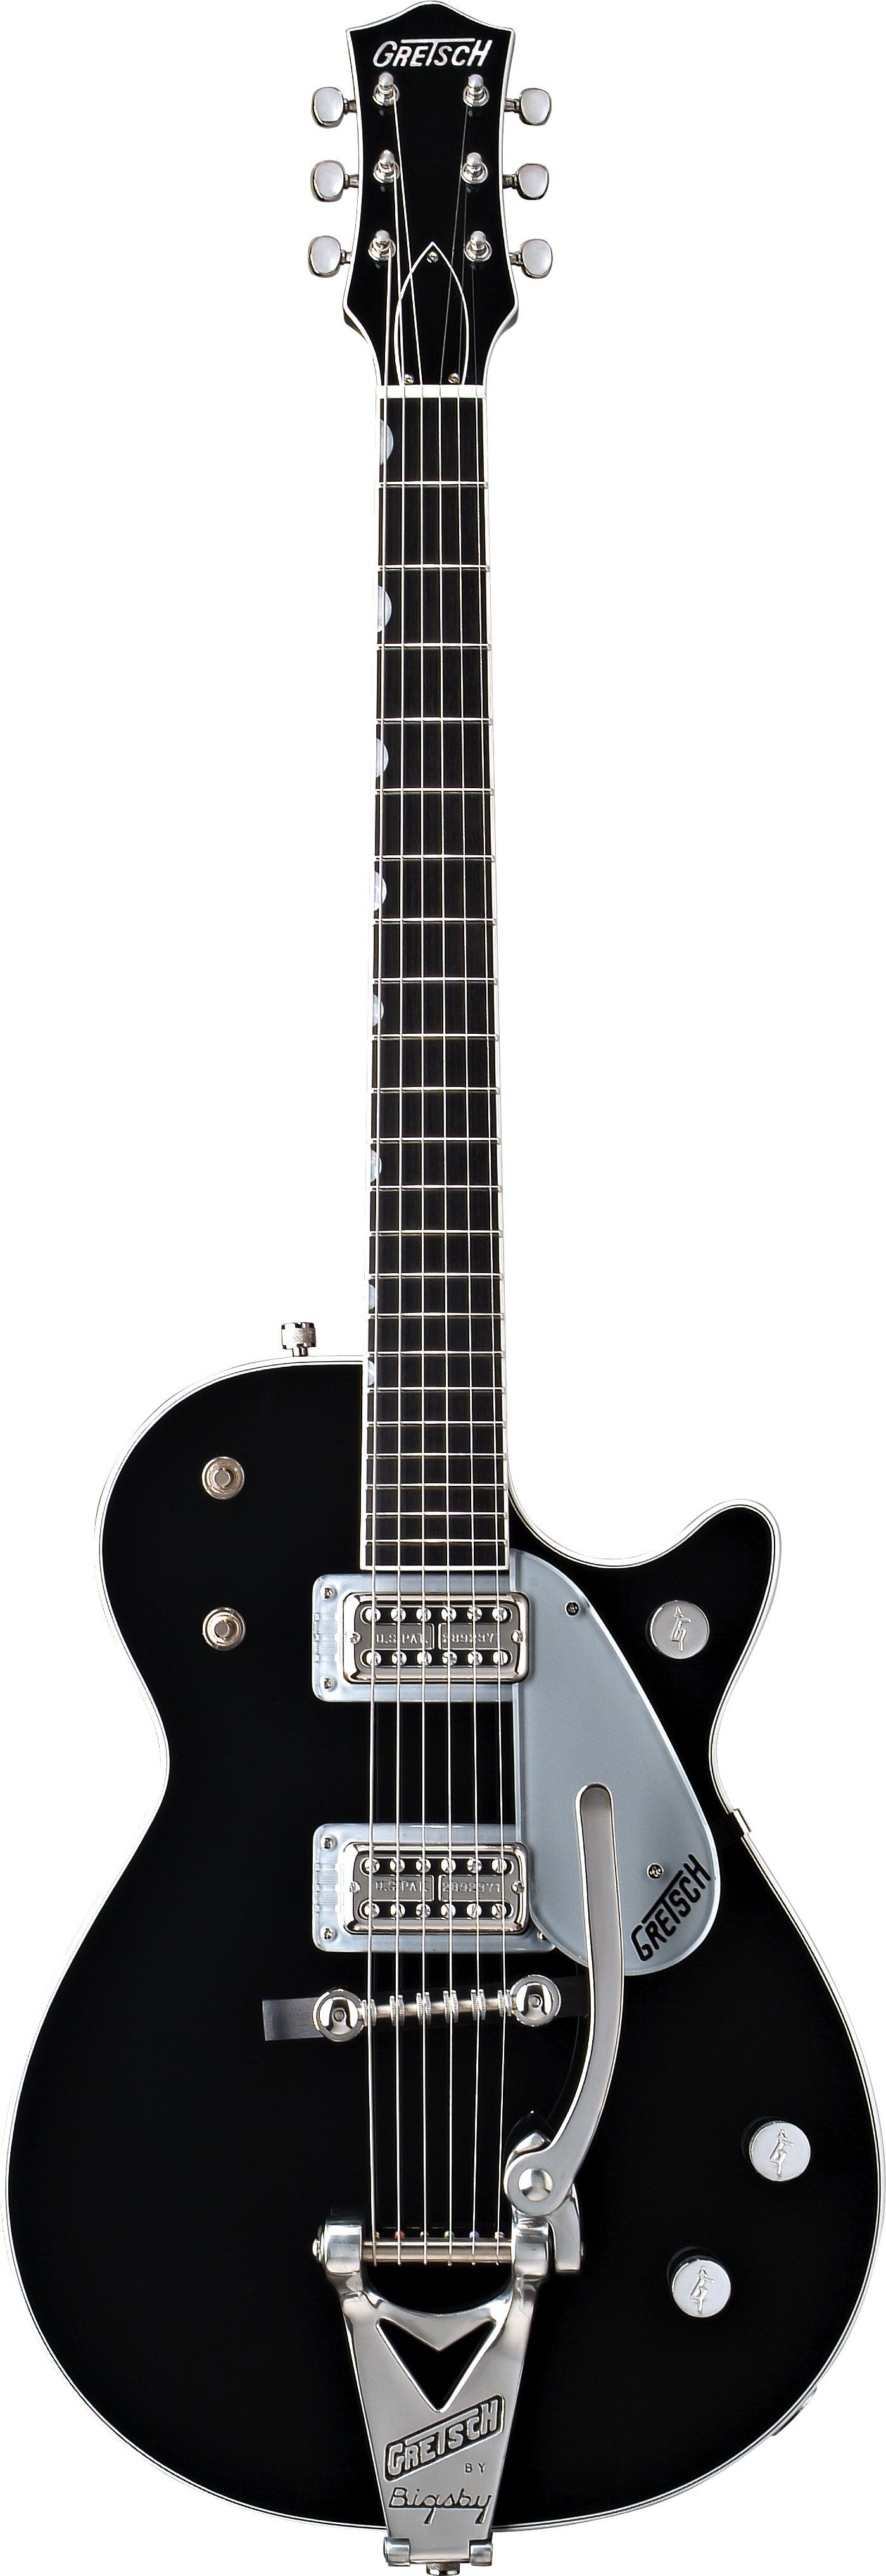 Gretsch Duo Jet my main workhorse